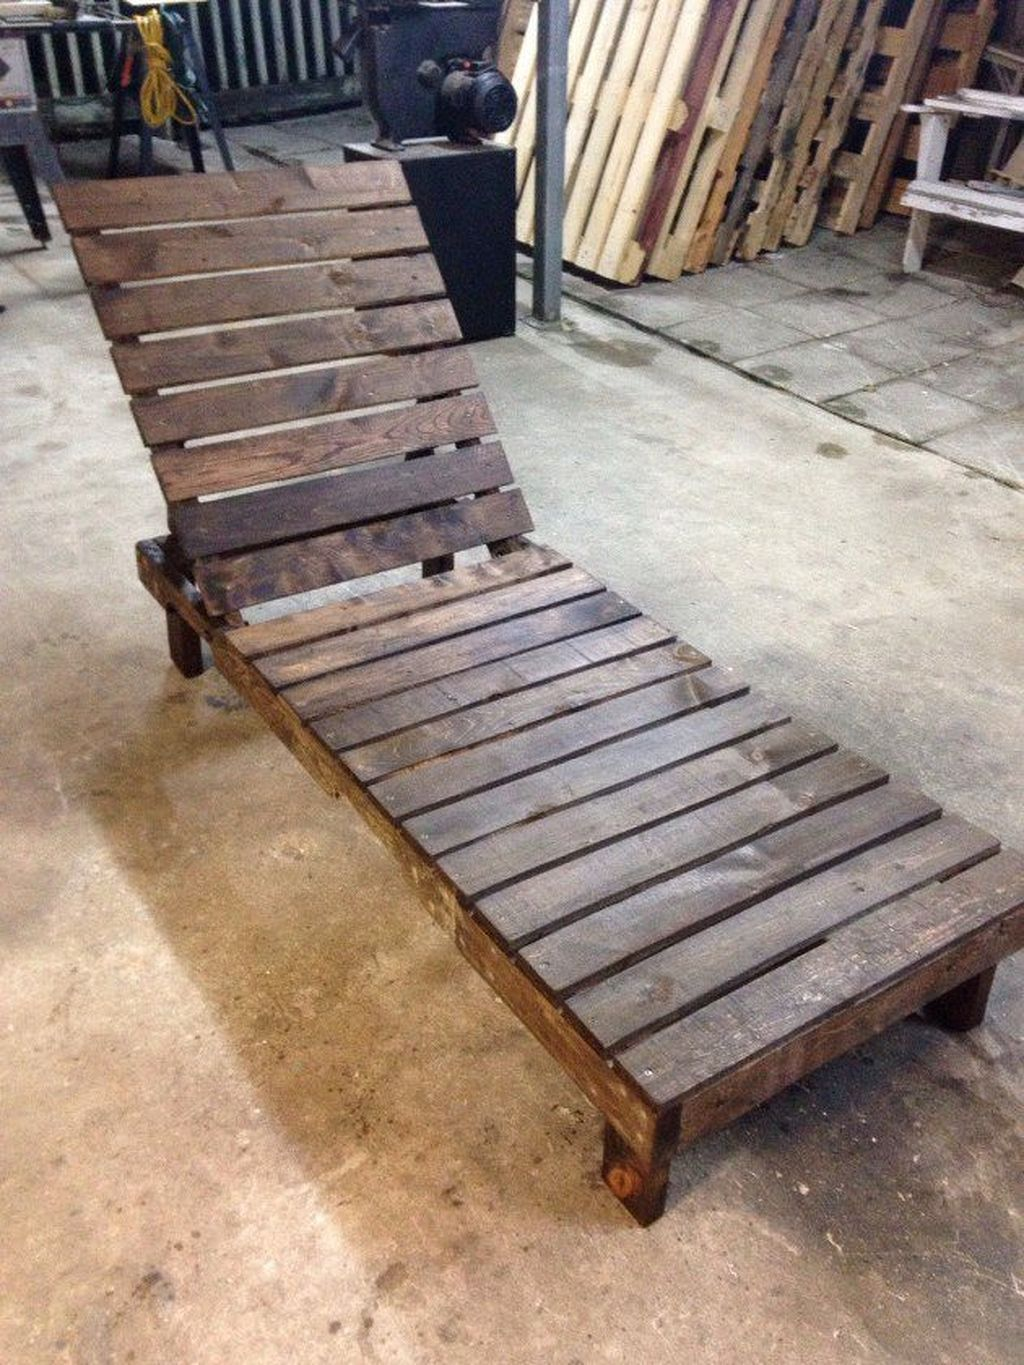 pallet furniture designs. 20+ Smart DIY Outdoor Pallet Furniture Designs That Will Amaze You R